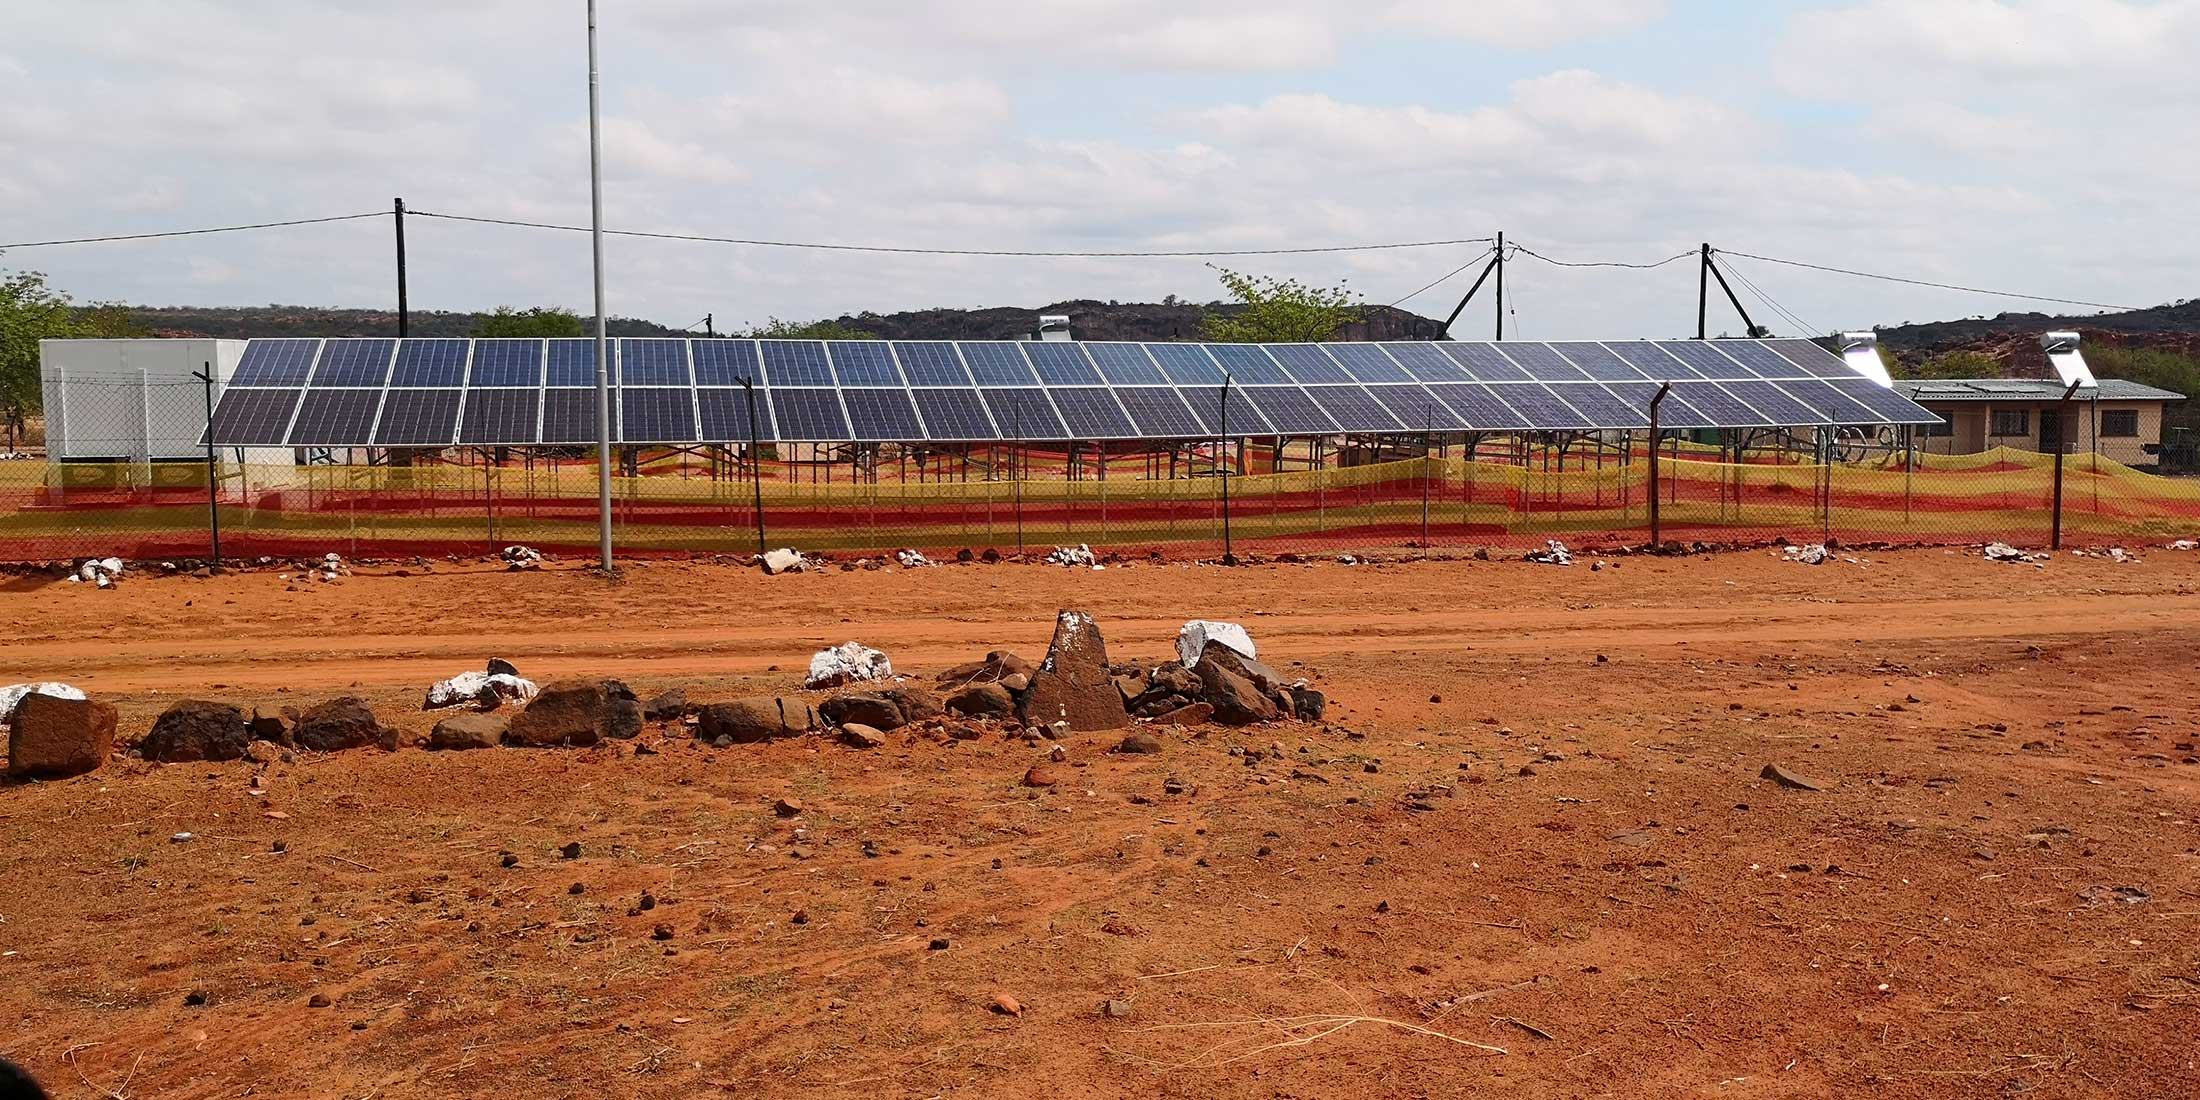 solarbw-botswana-school-solar-power-04